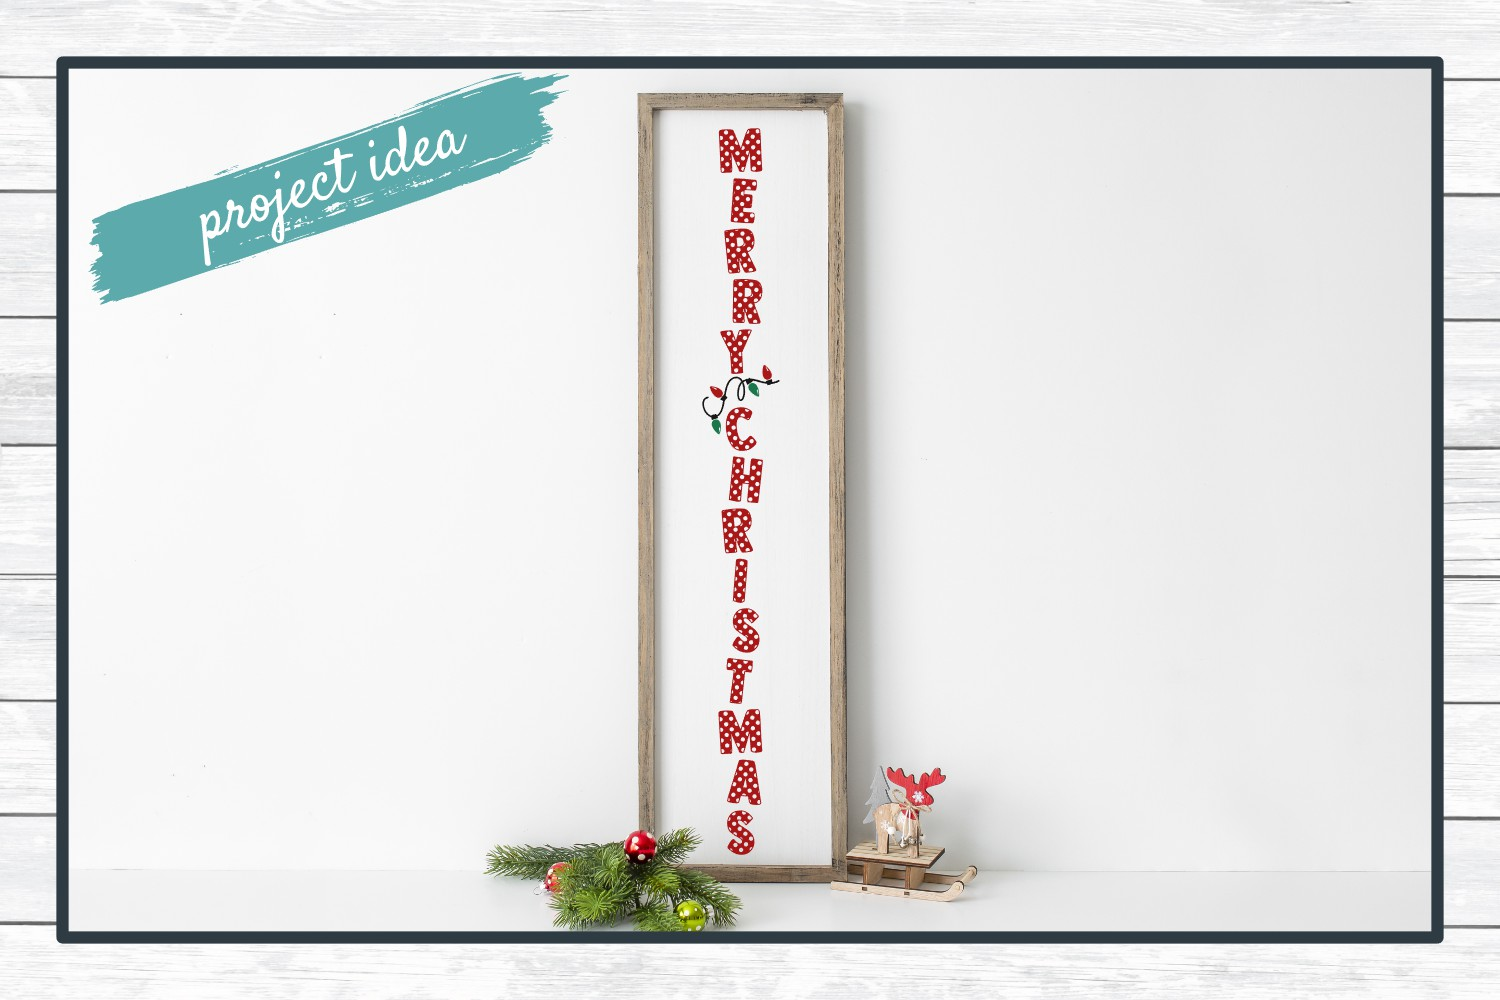 Merry Christmas Holiday Porch Sign Design - Christmas SVG Cu example image 2